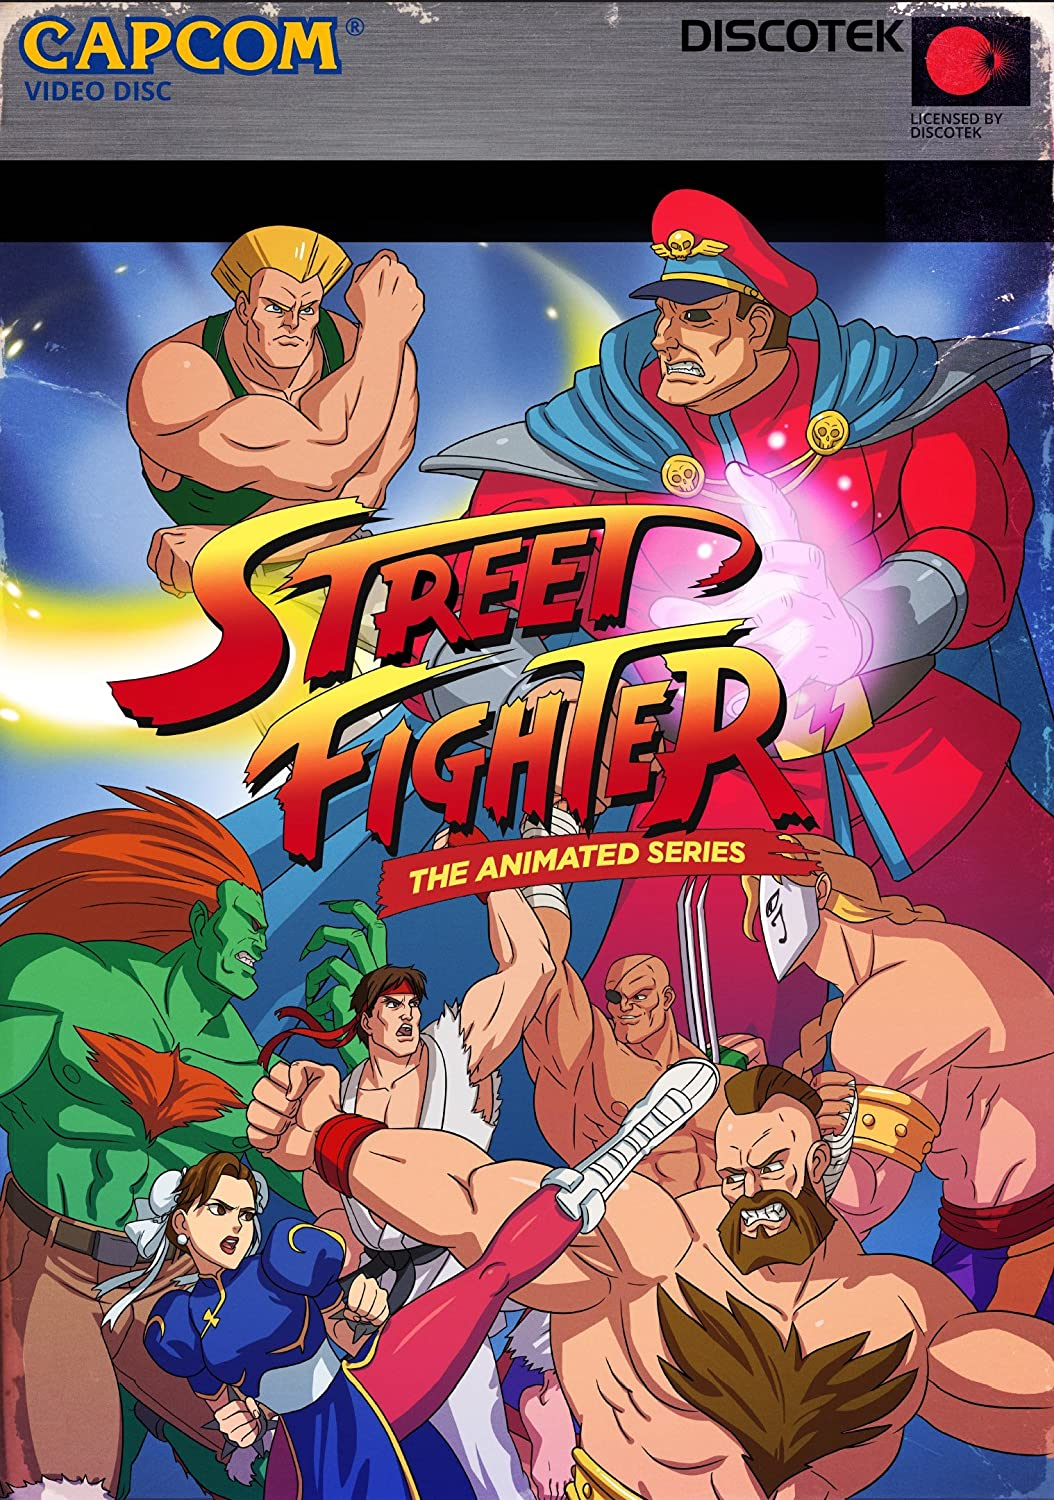 Amazon Com Street Fighter Ii The Animated Series Scott Mcneil Michael Donovan Daniel S Kletzky Movies Tv